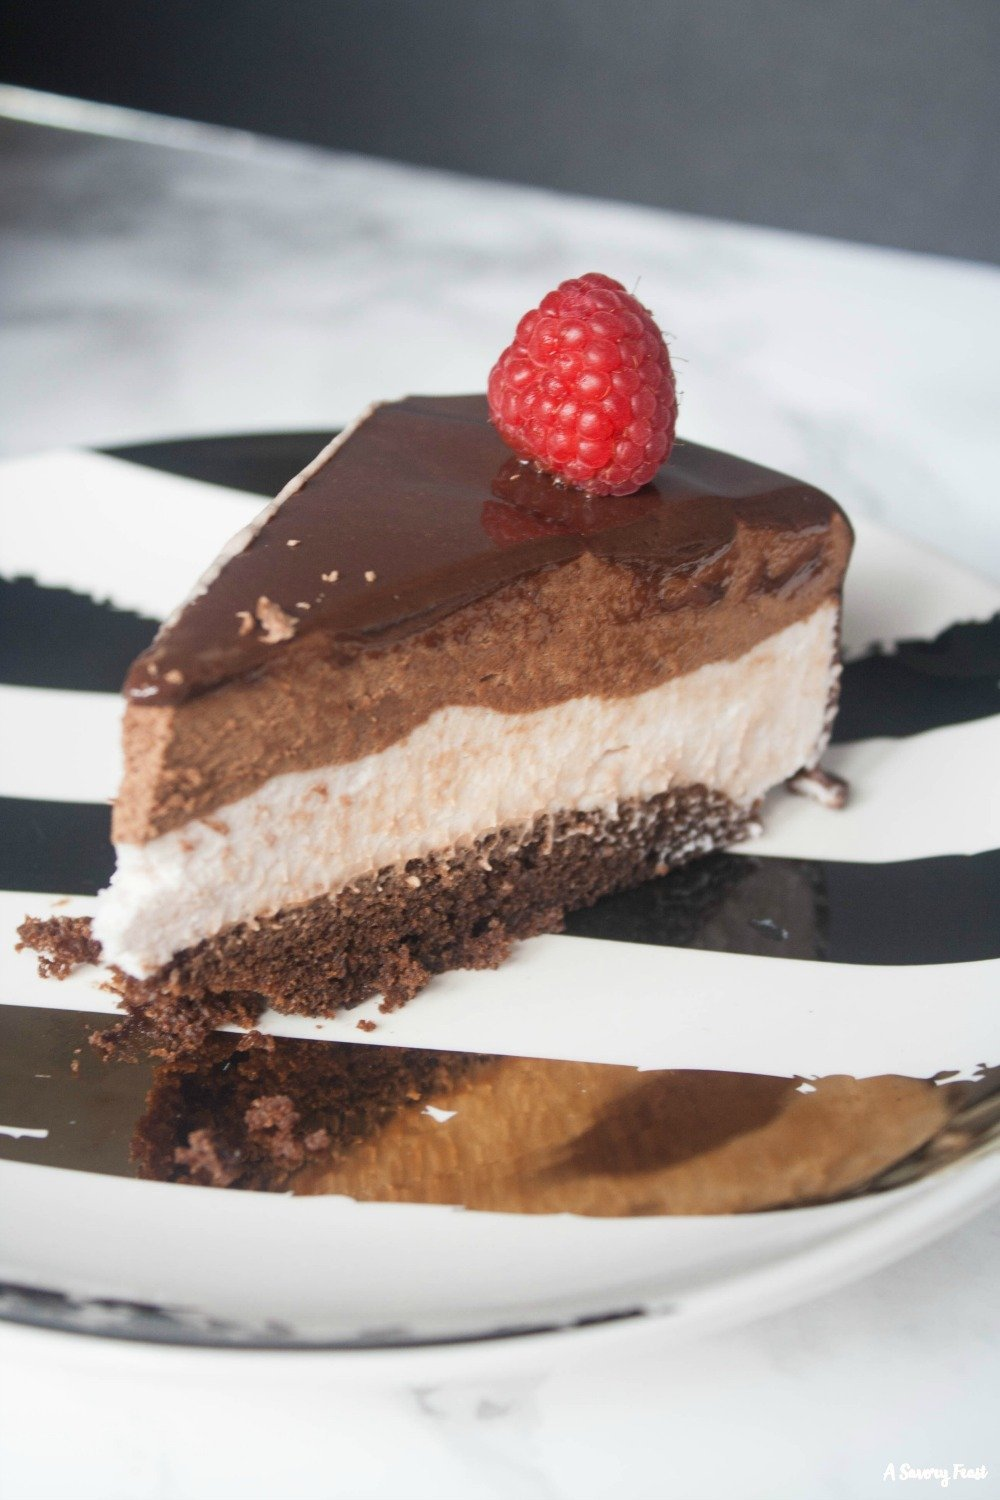 Want to WOW your friends? Make this Raspberry Chocolate Mousse Cake with Mirror Glaze.